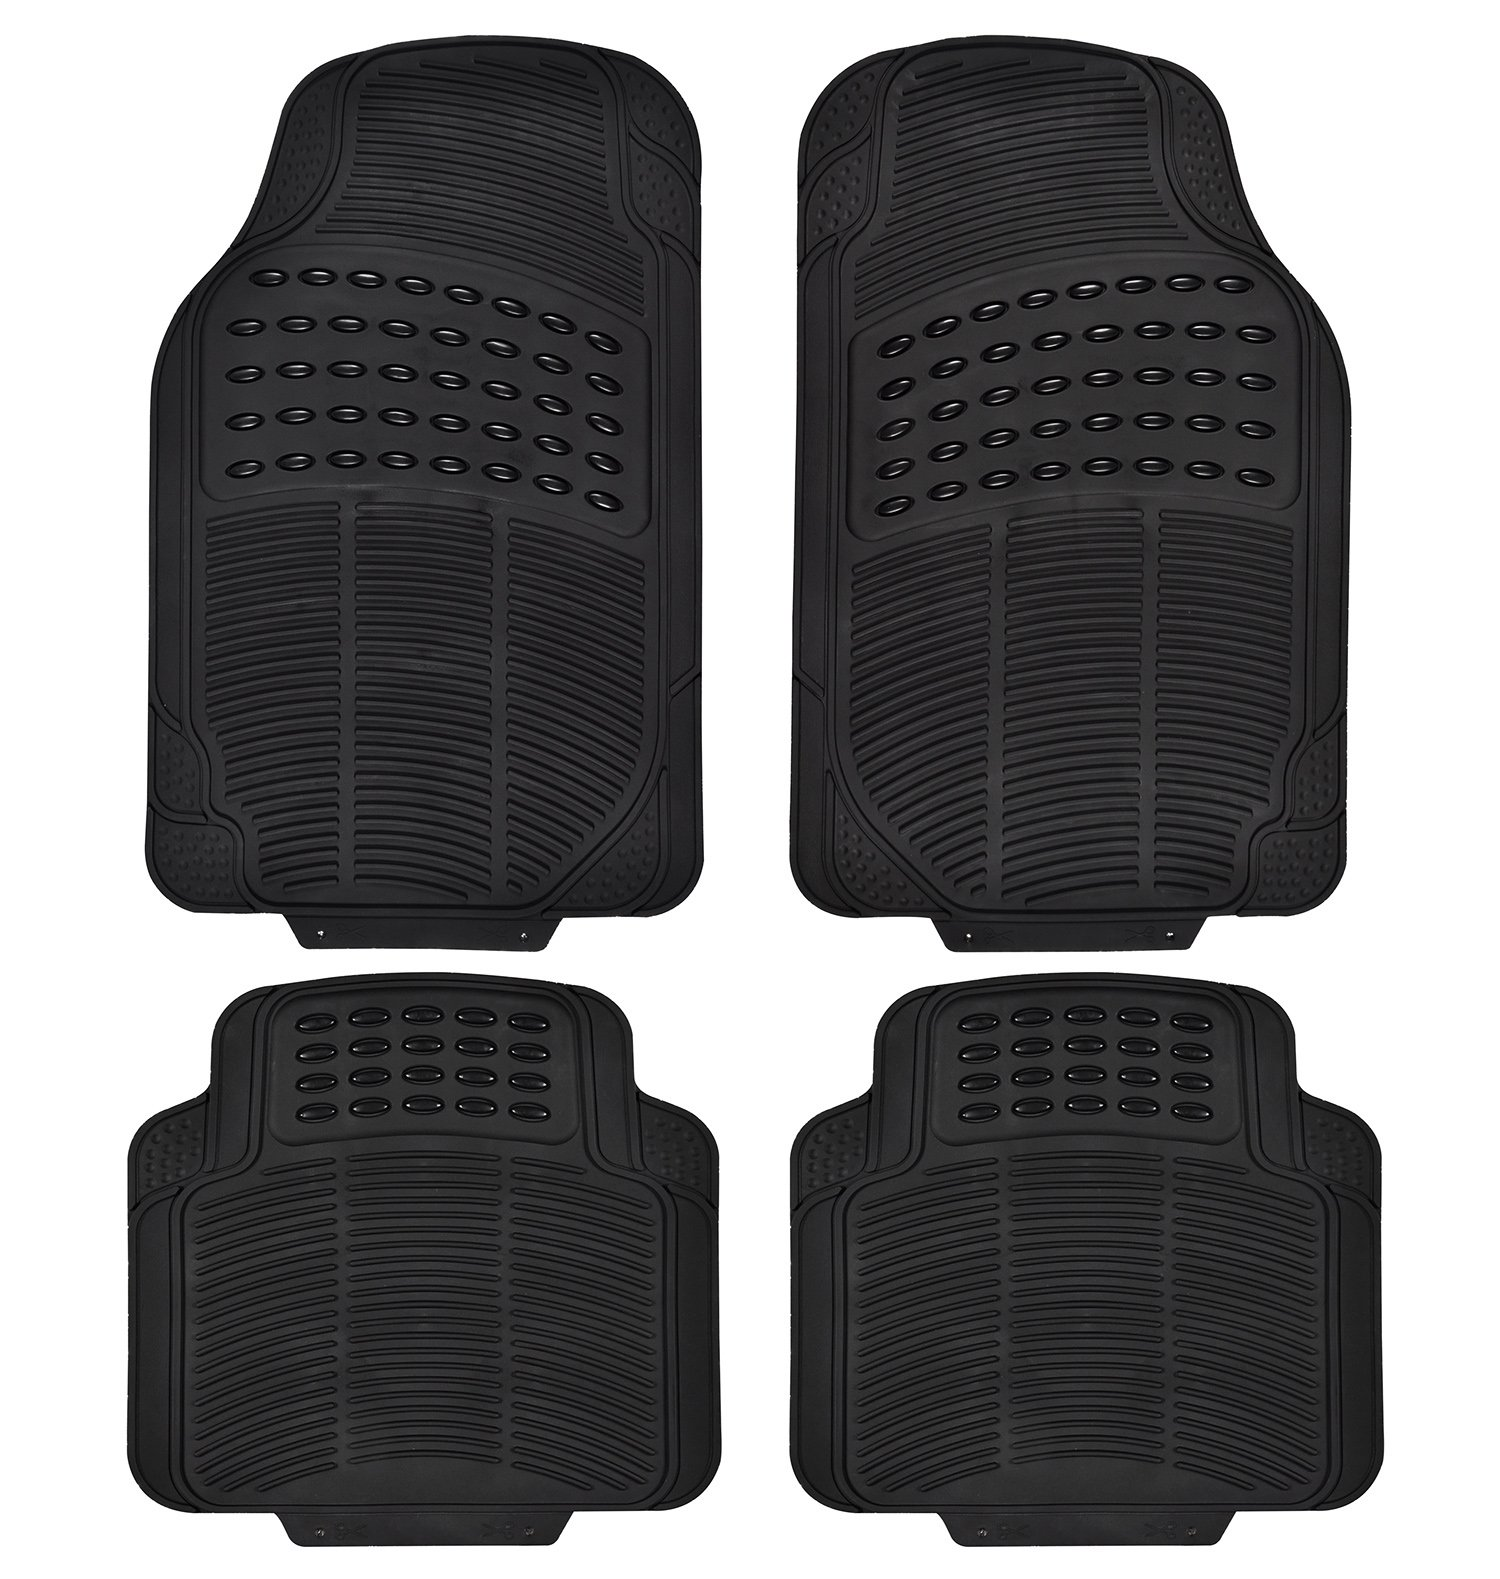 Car Floor Mats Heavy Duty Rubber Floor Mats 4pc All Weather Protection Universal Car Truck Suv Black